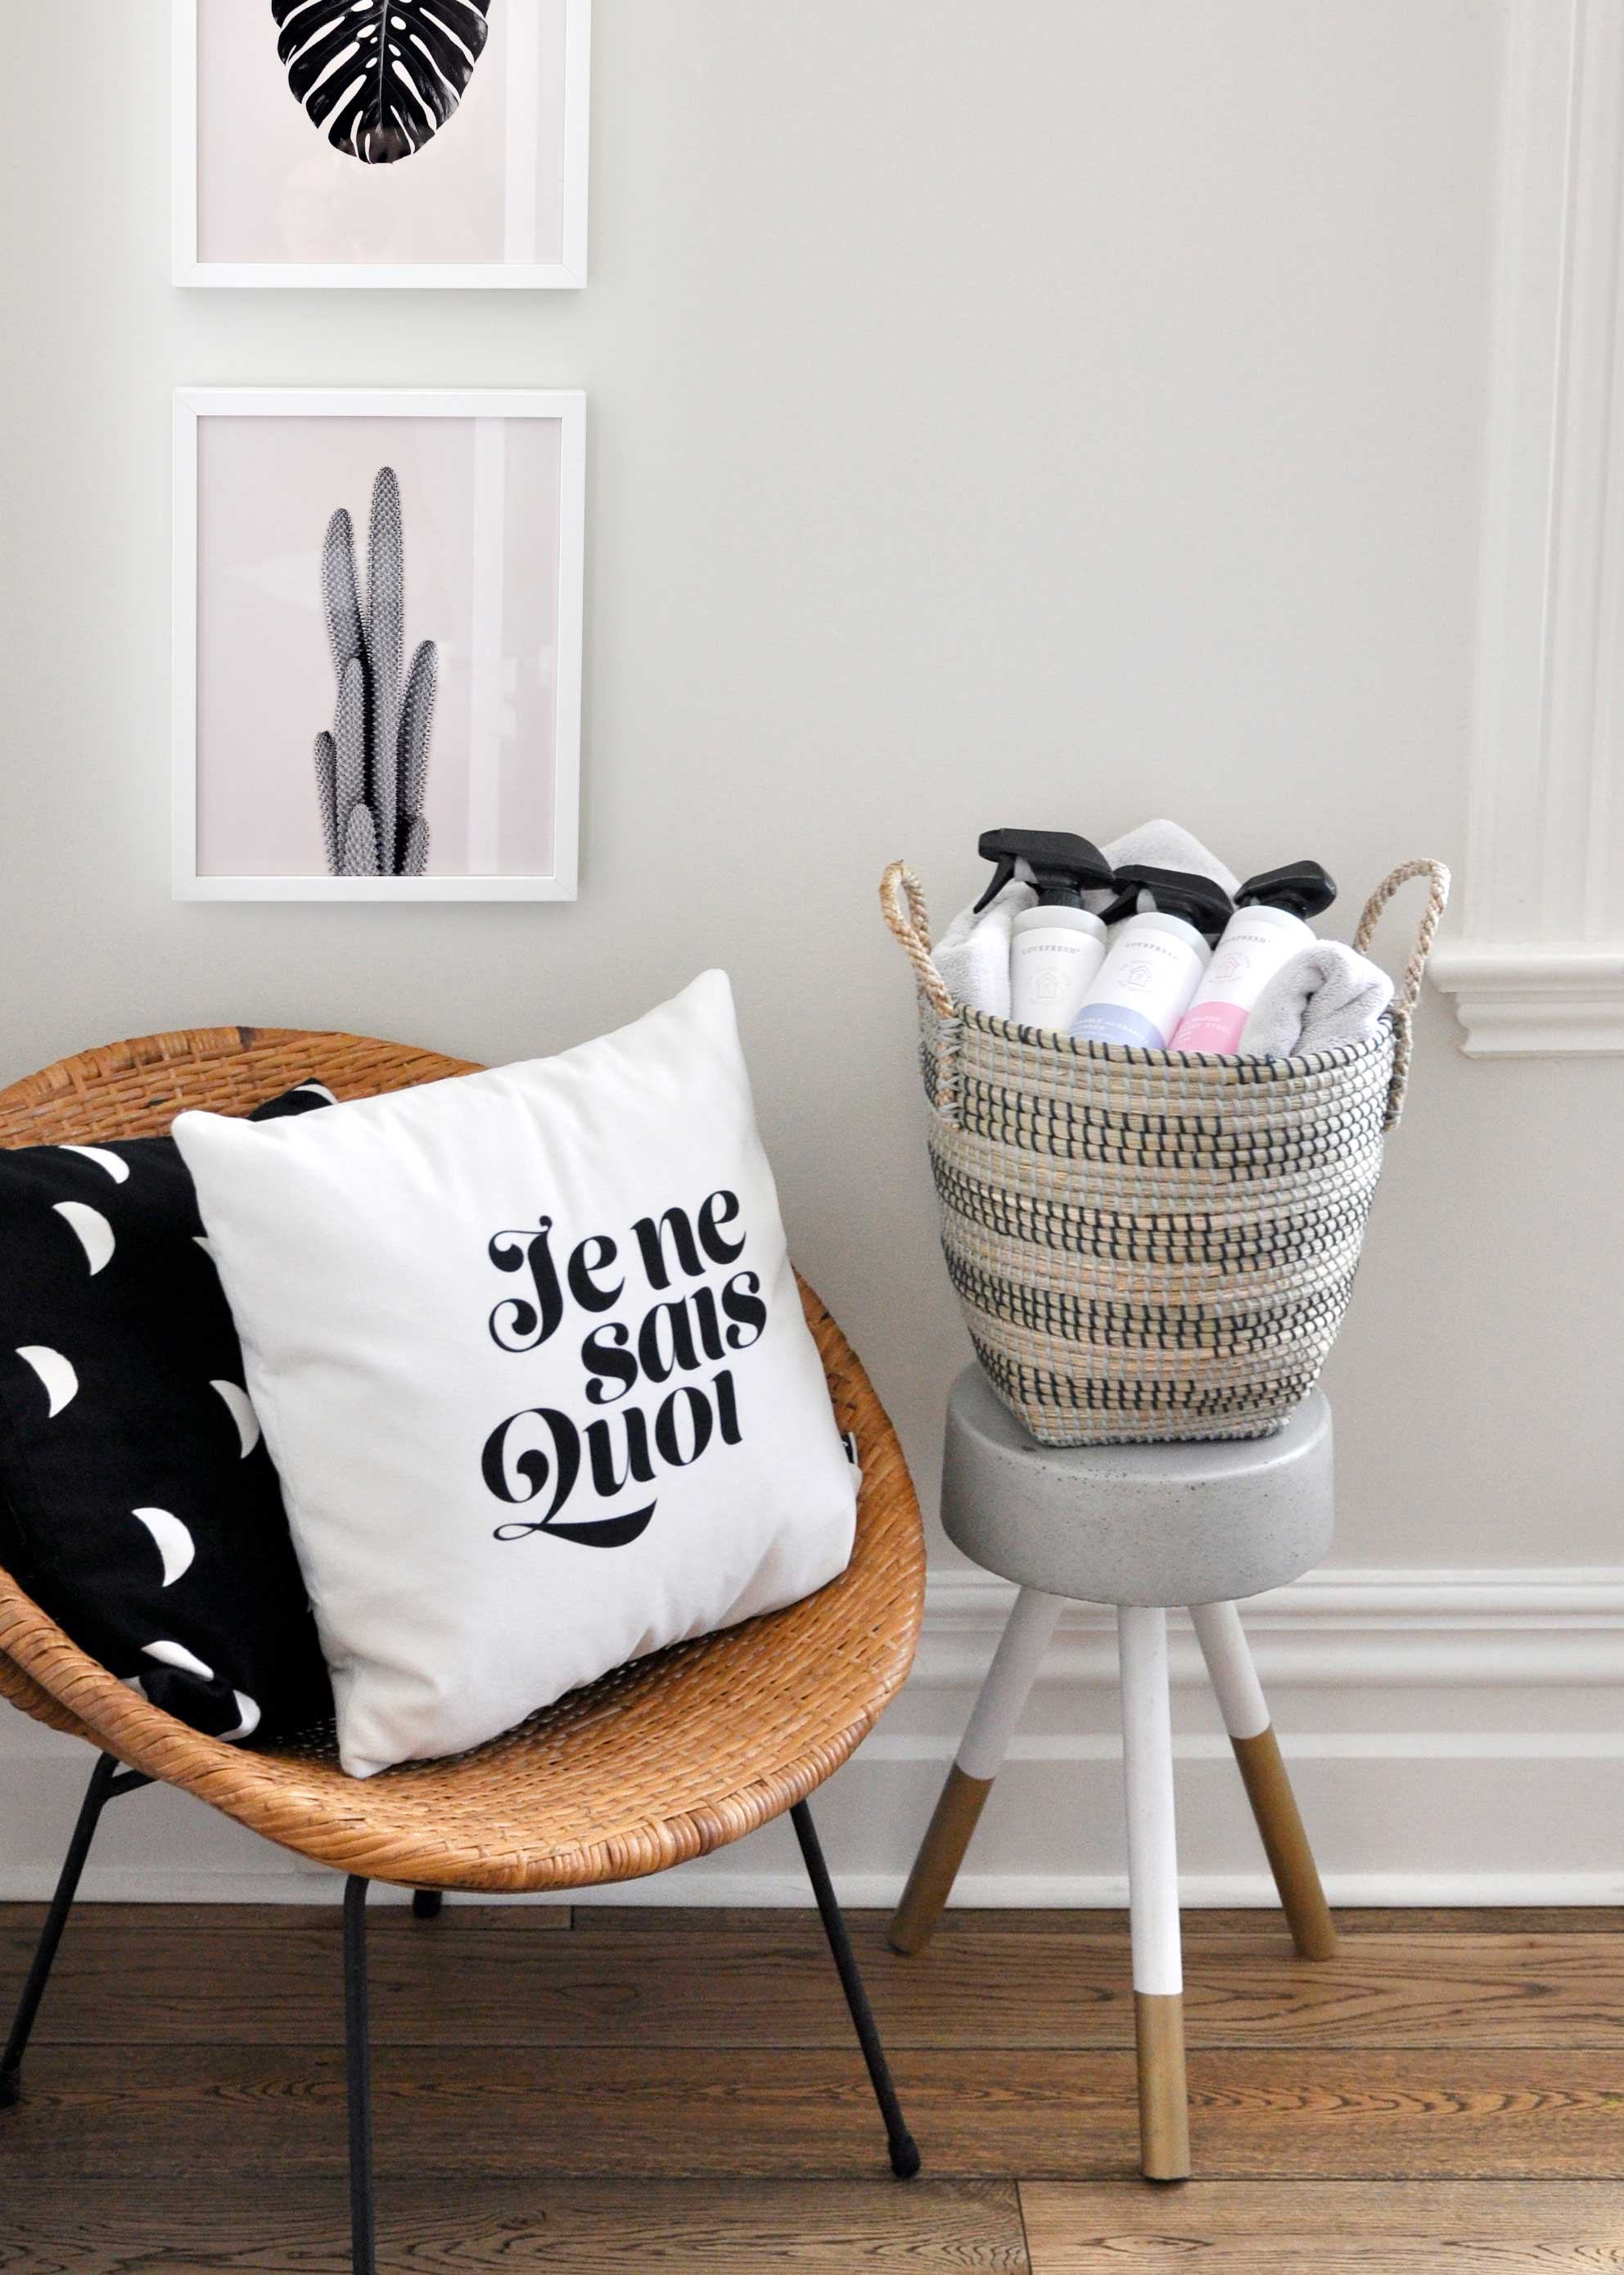 Swell Made Co. x Lovefresh | Freshen up Your Home for Spring GIVEAWAY.